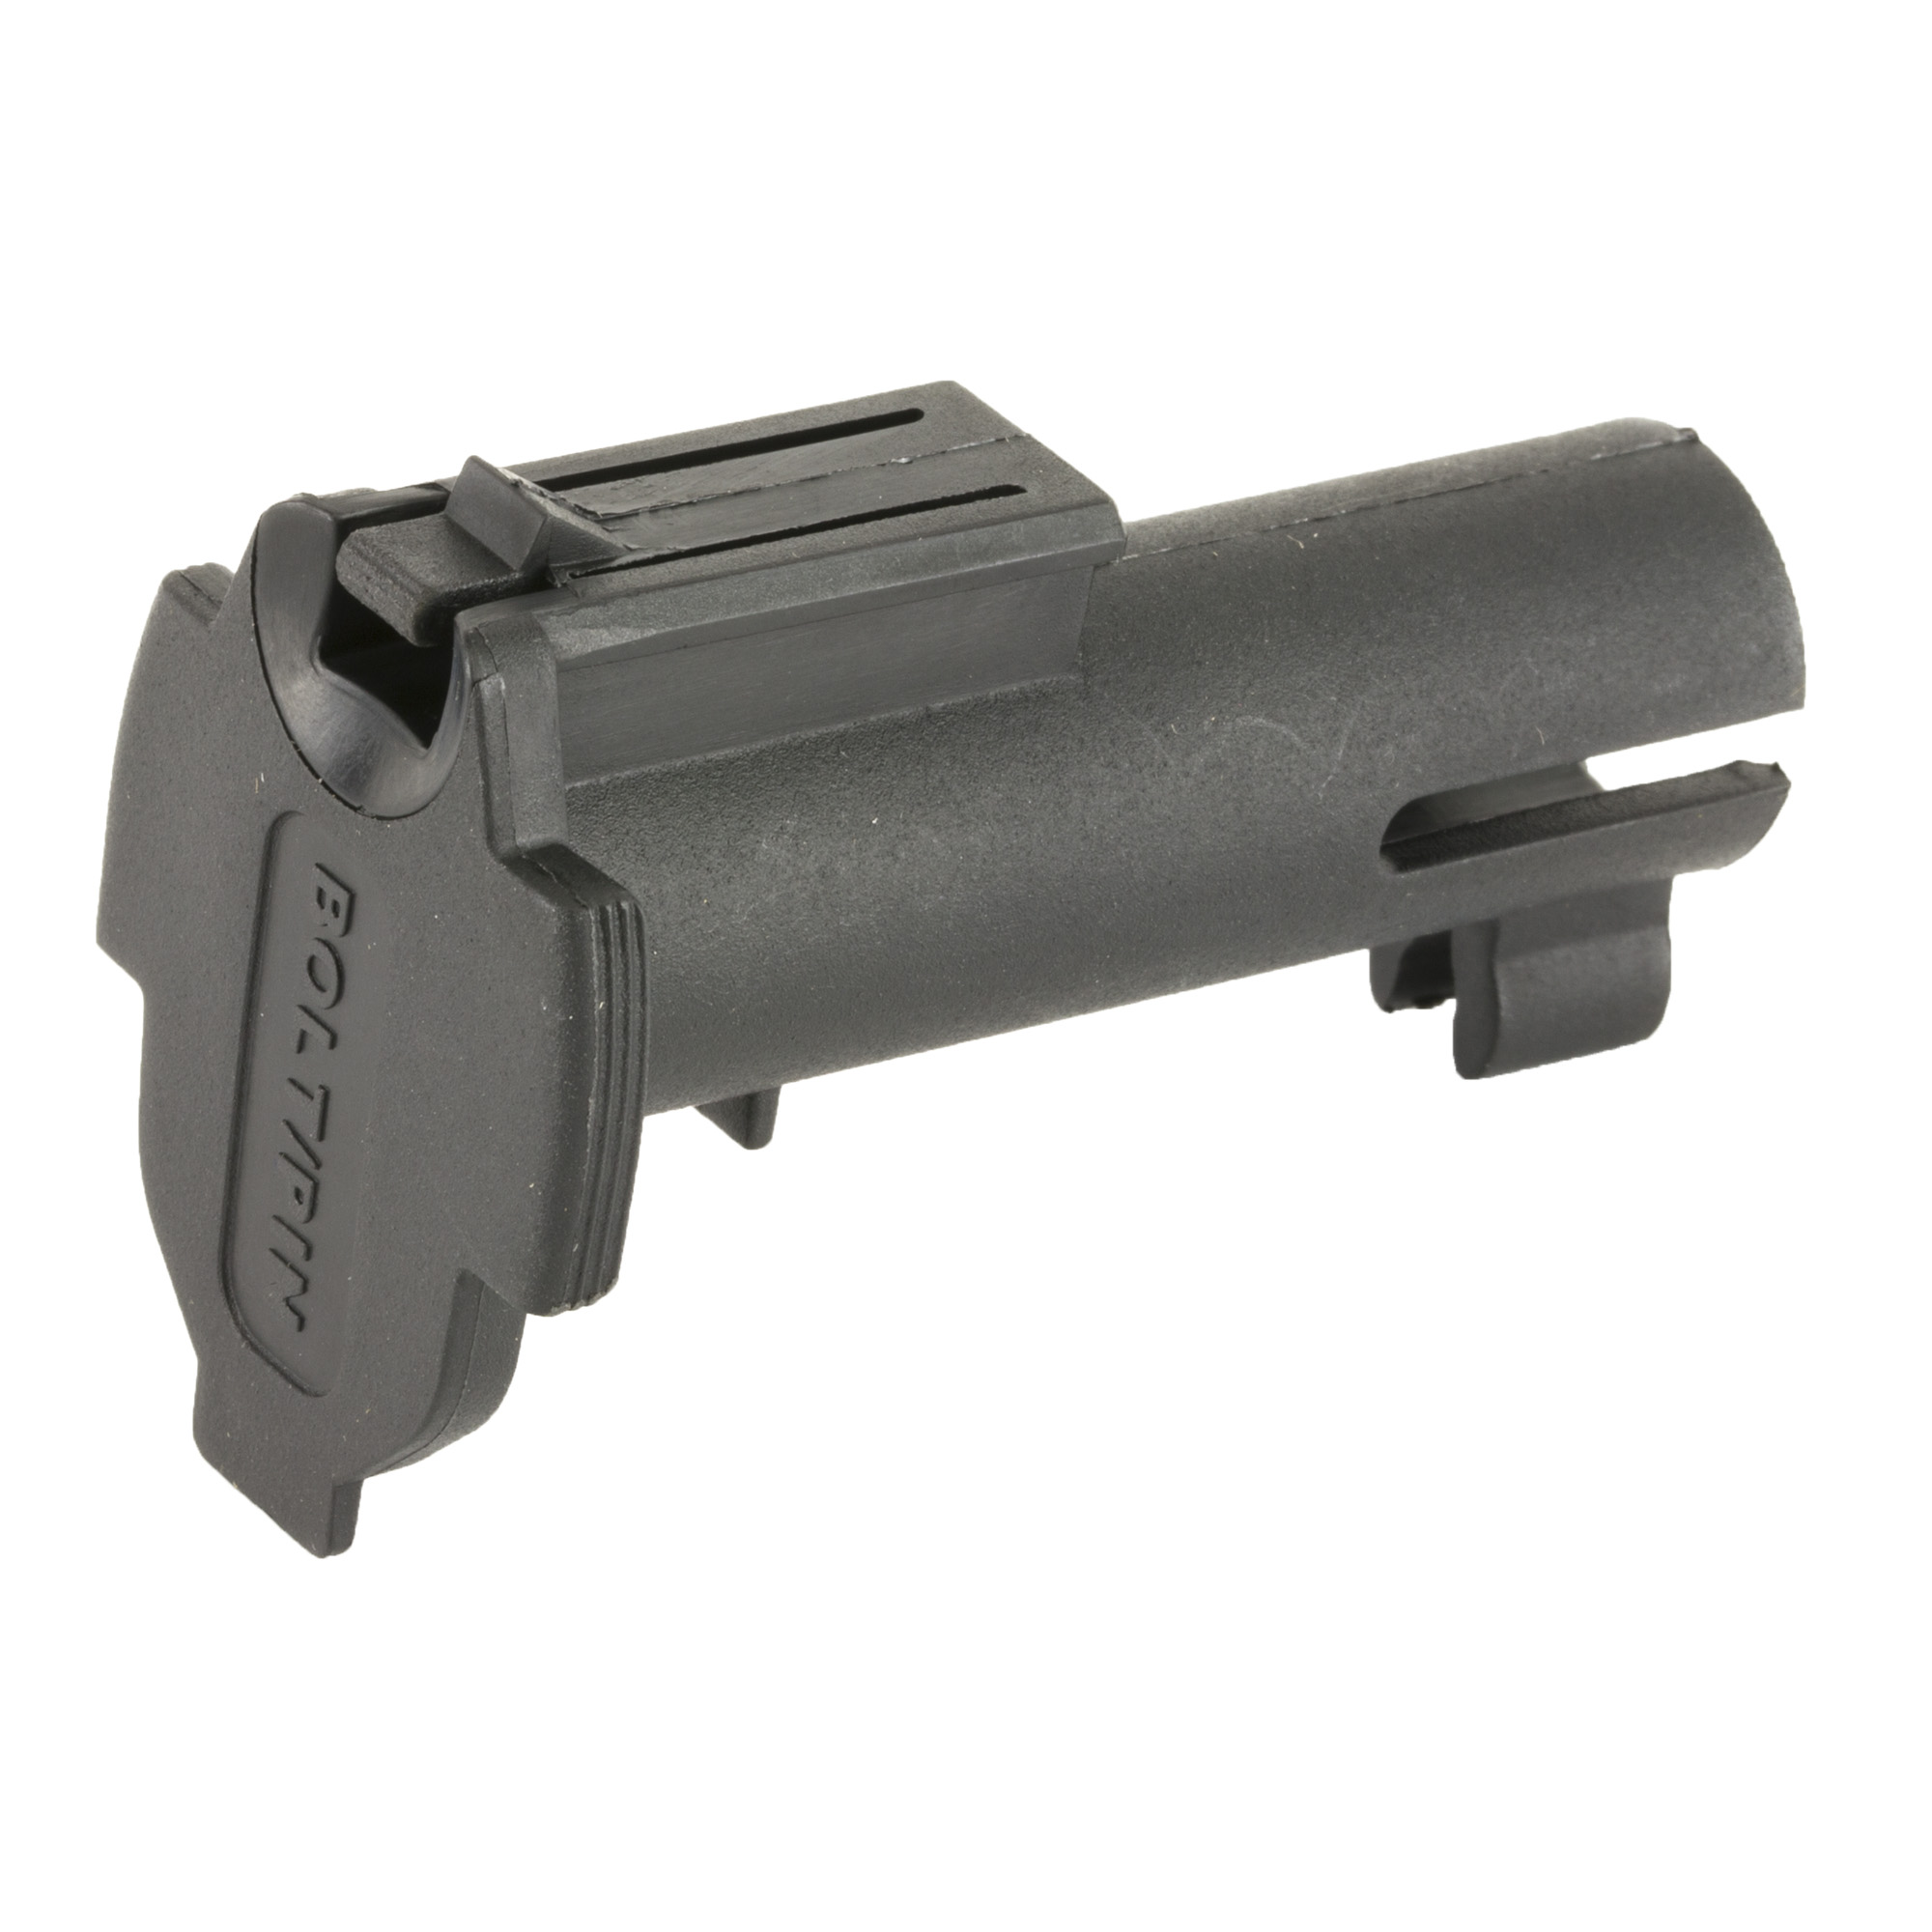 Internal core unit for the MIAD as well as the MOE(R) and MOE-K2(R) Grips* designed to hold one (1) standard AR15/M4 complete bolt and firing pin.